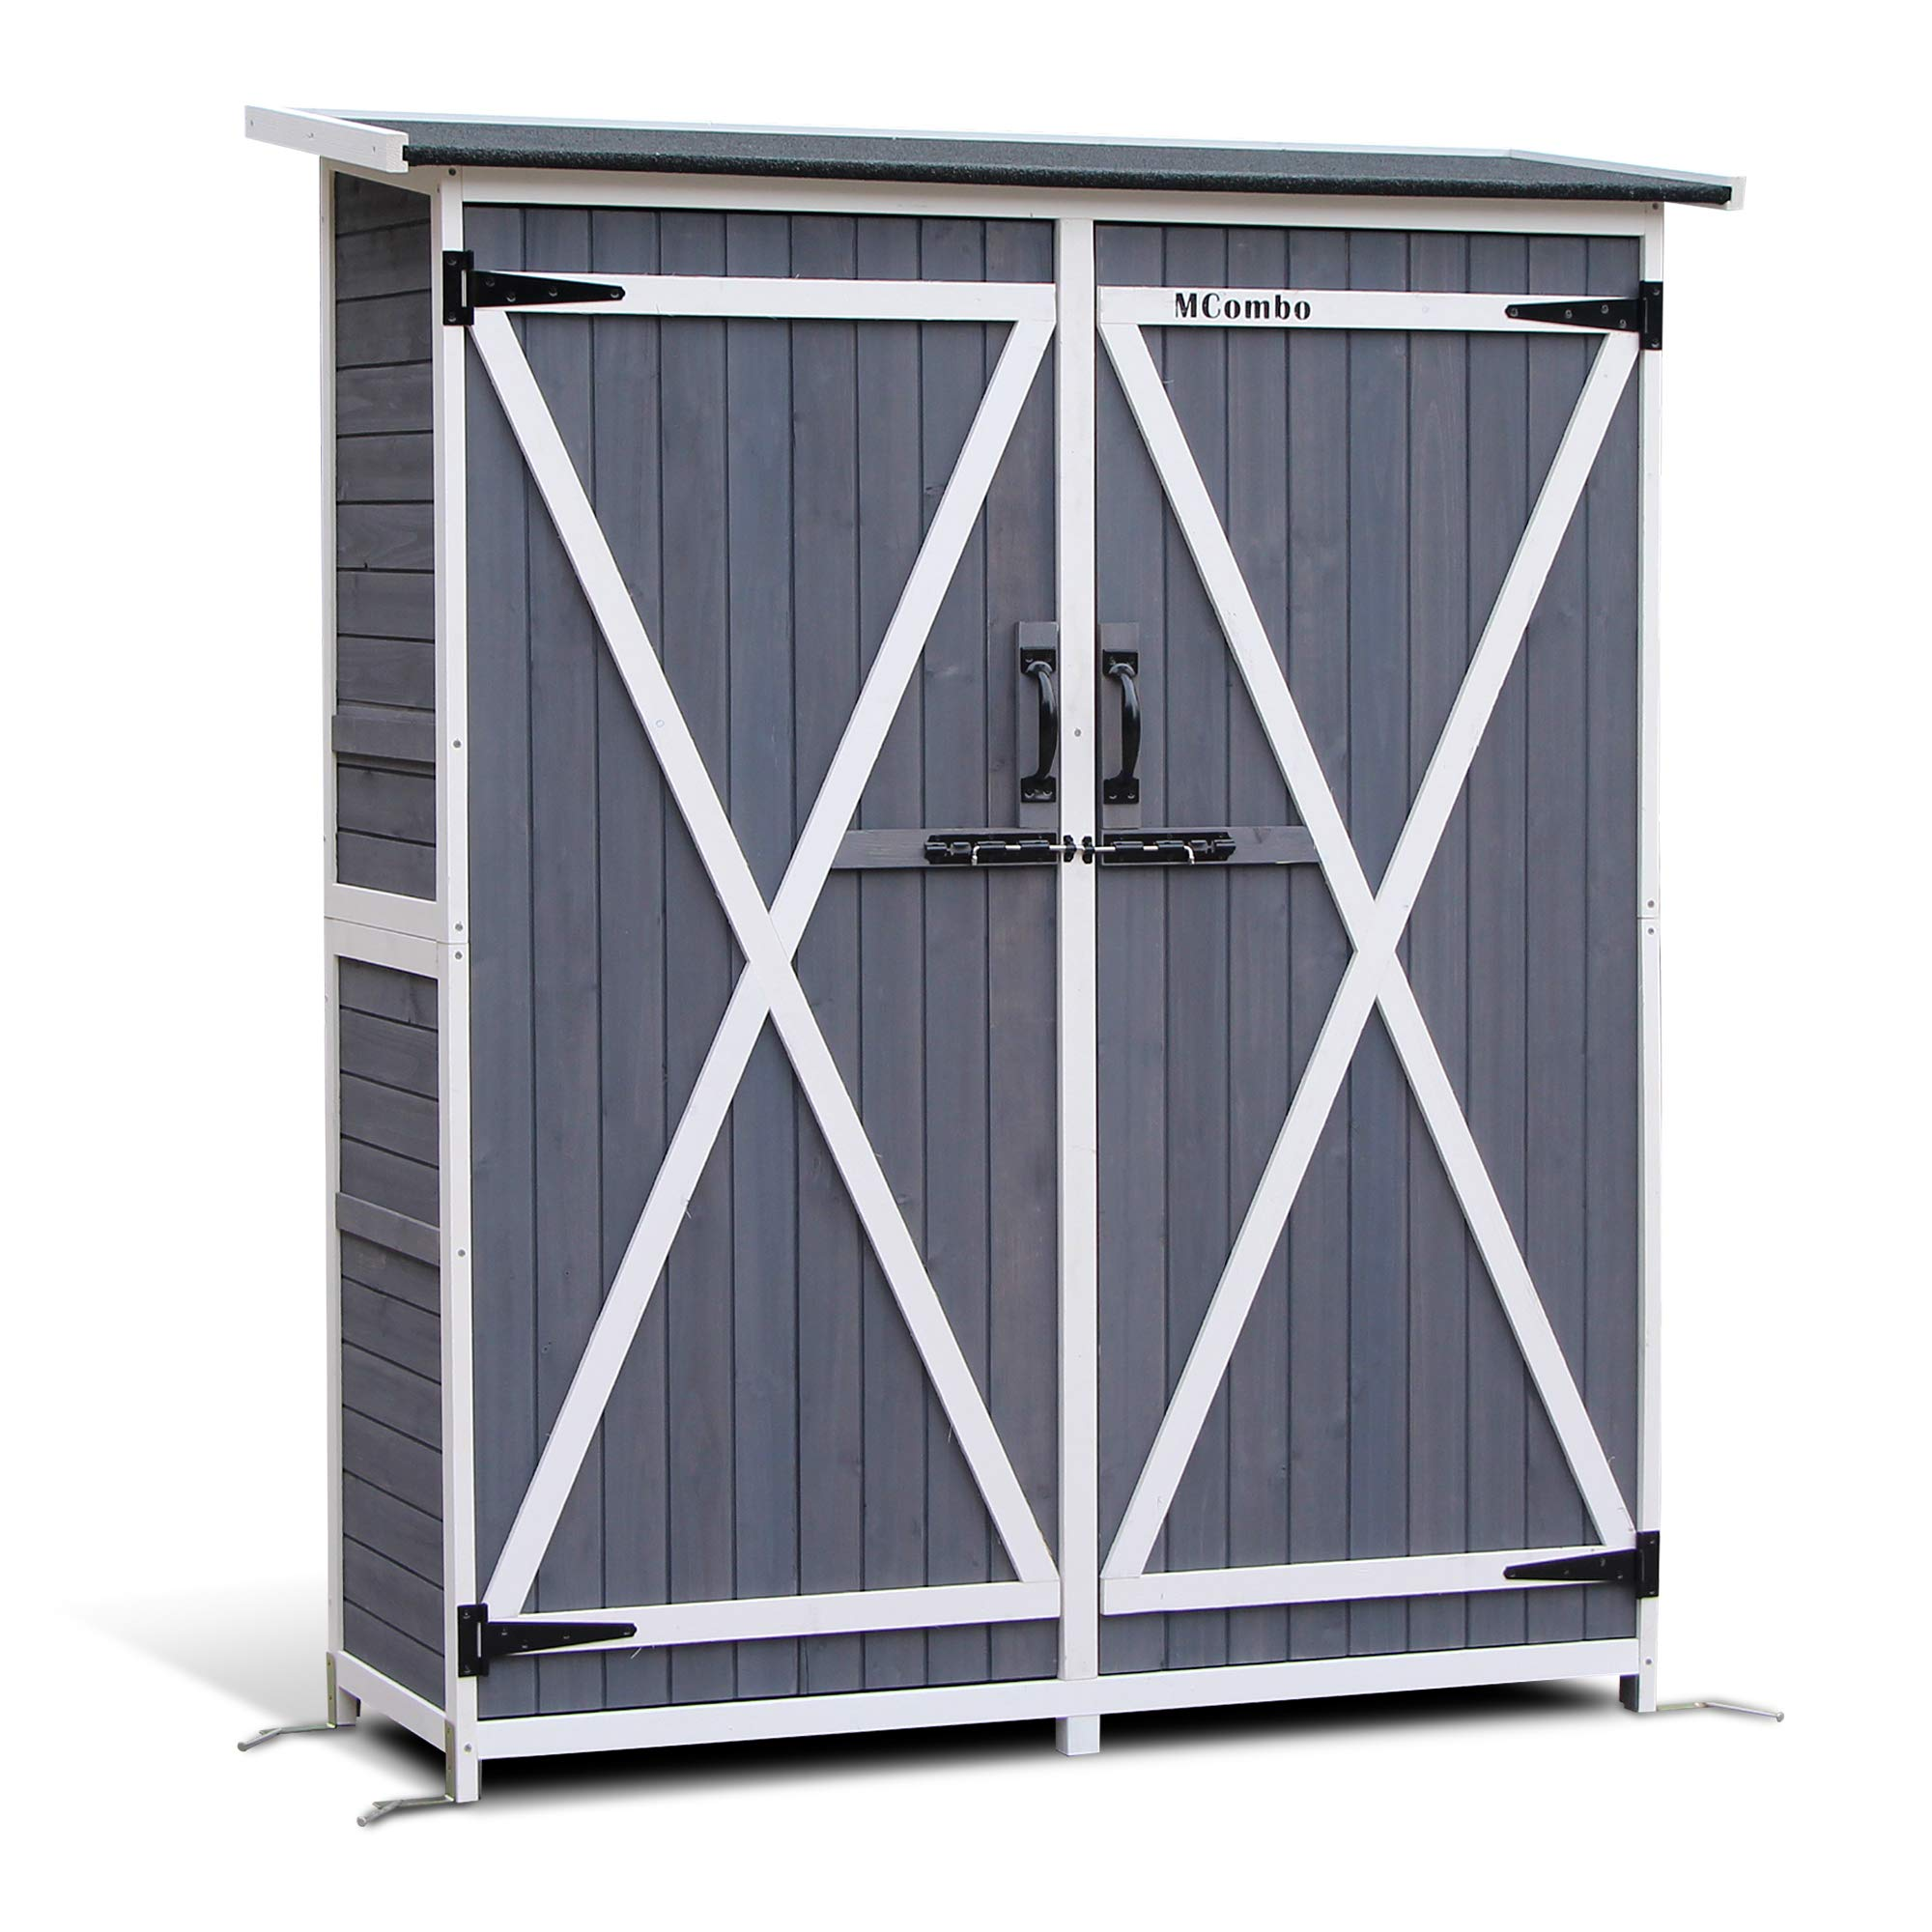 Mcombo Storage Shed Backyard Utility Tools Organizer Outdoor Wooden Garden Racks Shelves with Lockers 2 Doors Home Furniture 1400(Grey) by MCombo